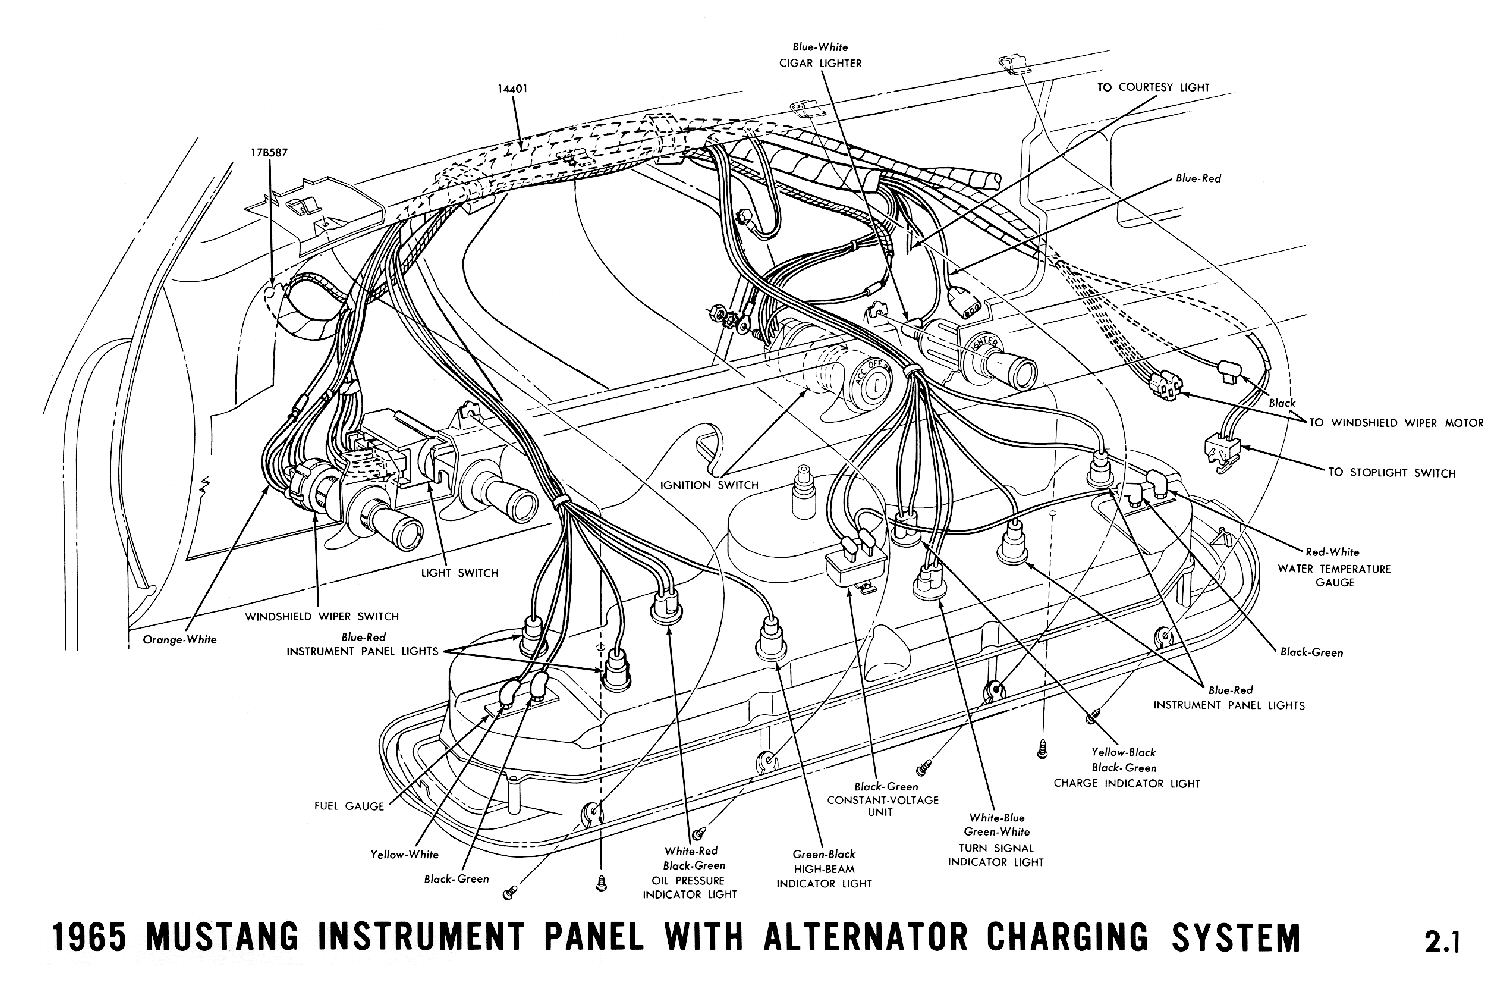 66 ford ignition system wiring diagram pdf with 66 Mustang 2 Speed Wiper Wiring Diagram on 66 Mustang 2 Speed Wiper Wiring Diagram besides Installing 20Gauges together with 1966 Mustang Wiring Diagram Pdf as well Vanagon Radio Wiring Diagram Besides Vw Turn Signal besides 108079 Wiring Question.